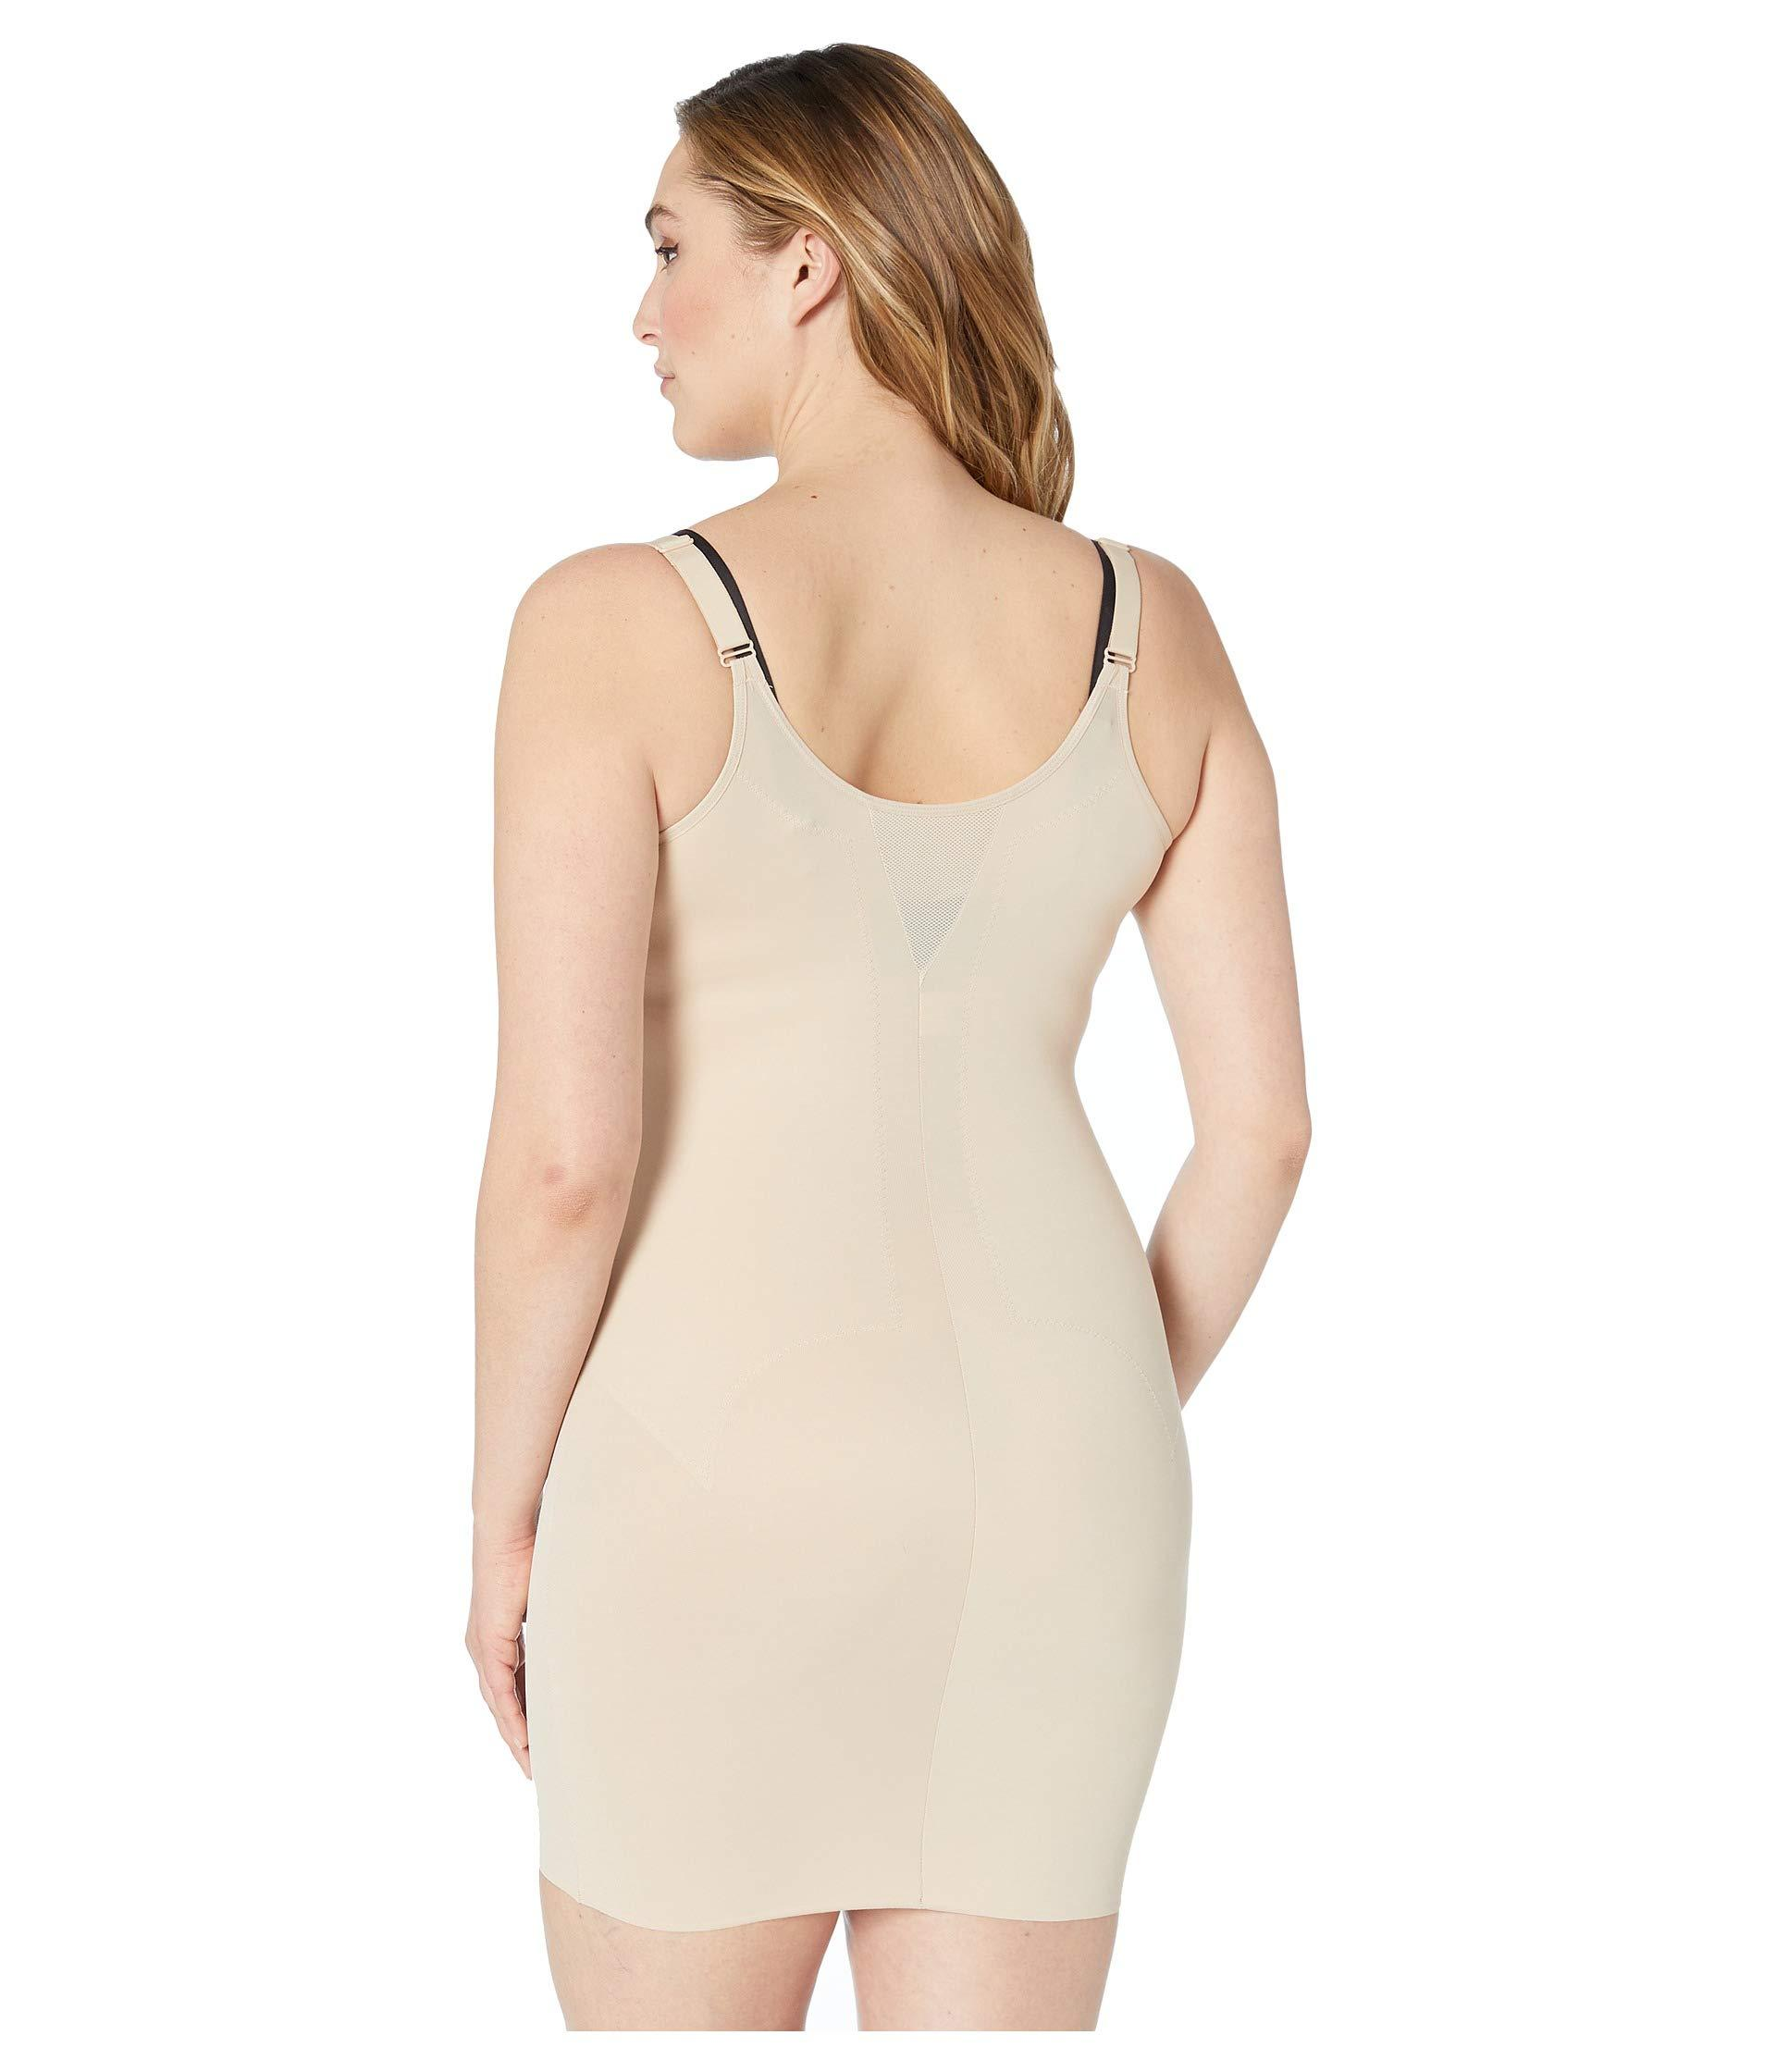 b7b25e52dfe Miraclesuit - Natural Plus Size Wear-your-own-bra Extra Firm Control Slip.  View fullscreen